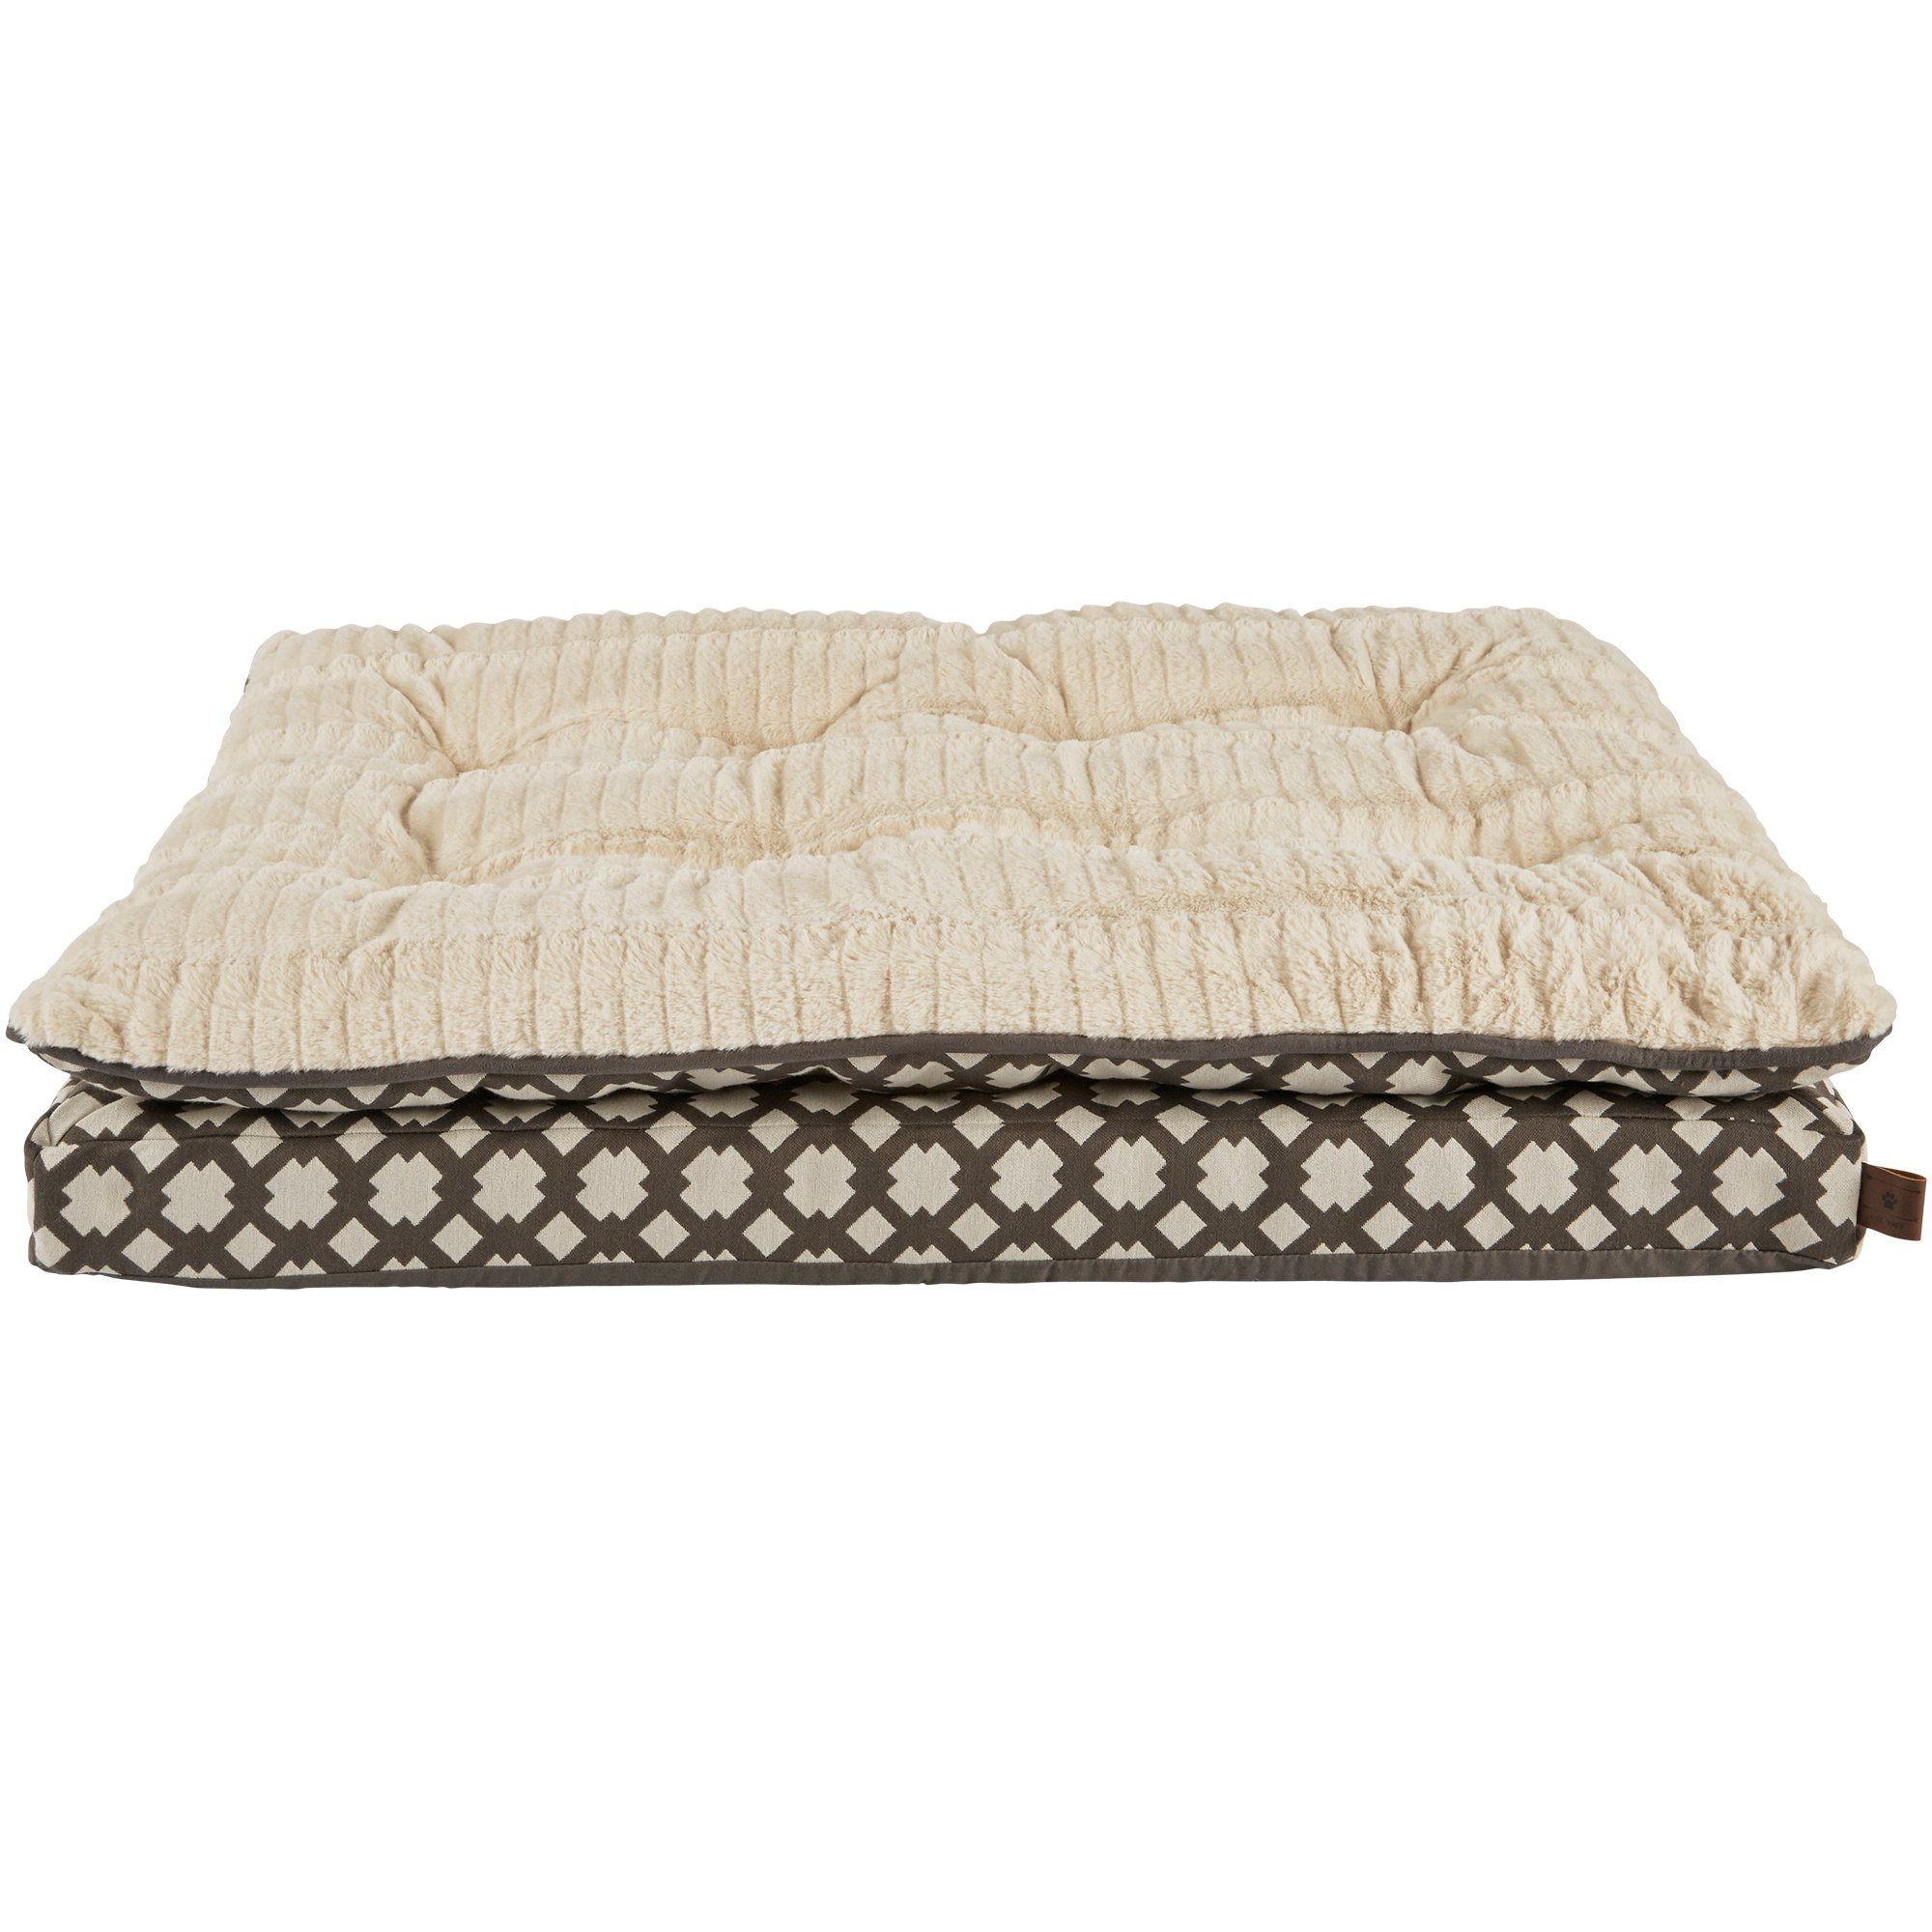 extra valley bed to dog hidden and beds couch baxter small orthopedic